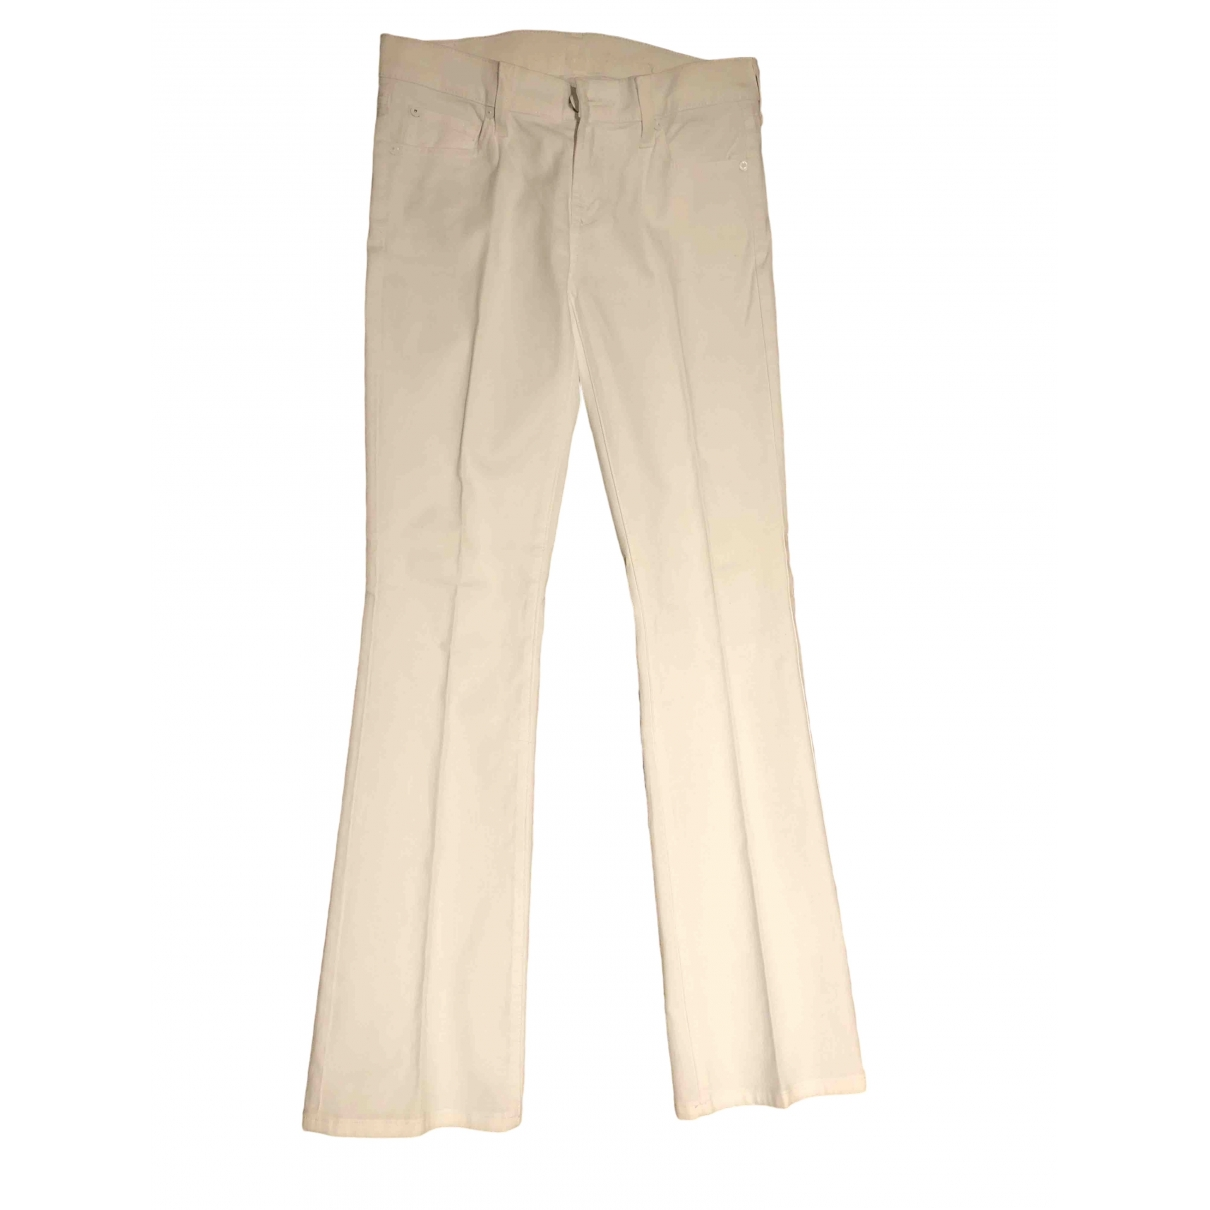 7 For All Mankind \N White Cotton - elasthane Jeans for Women 26 US